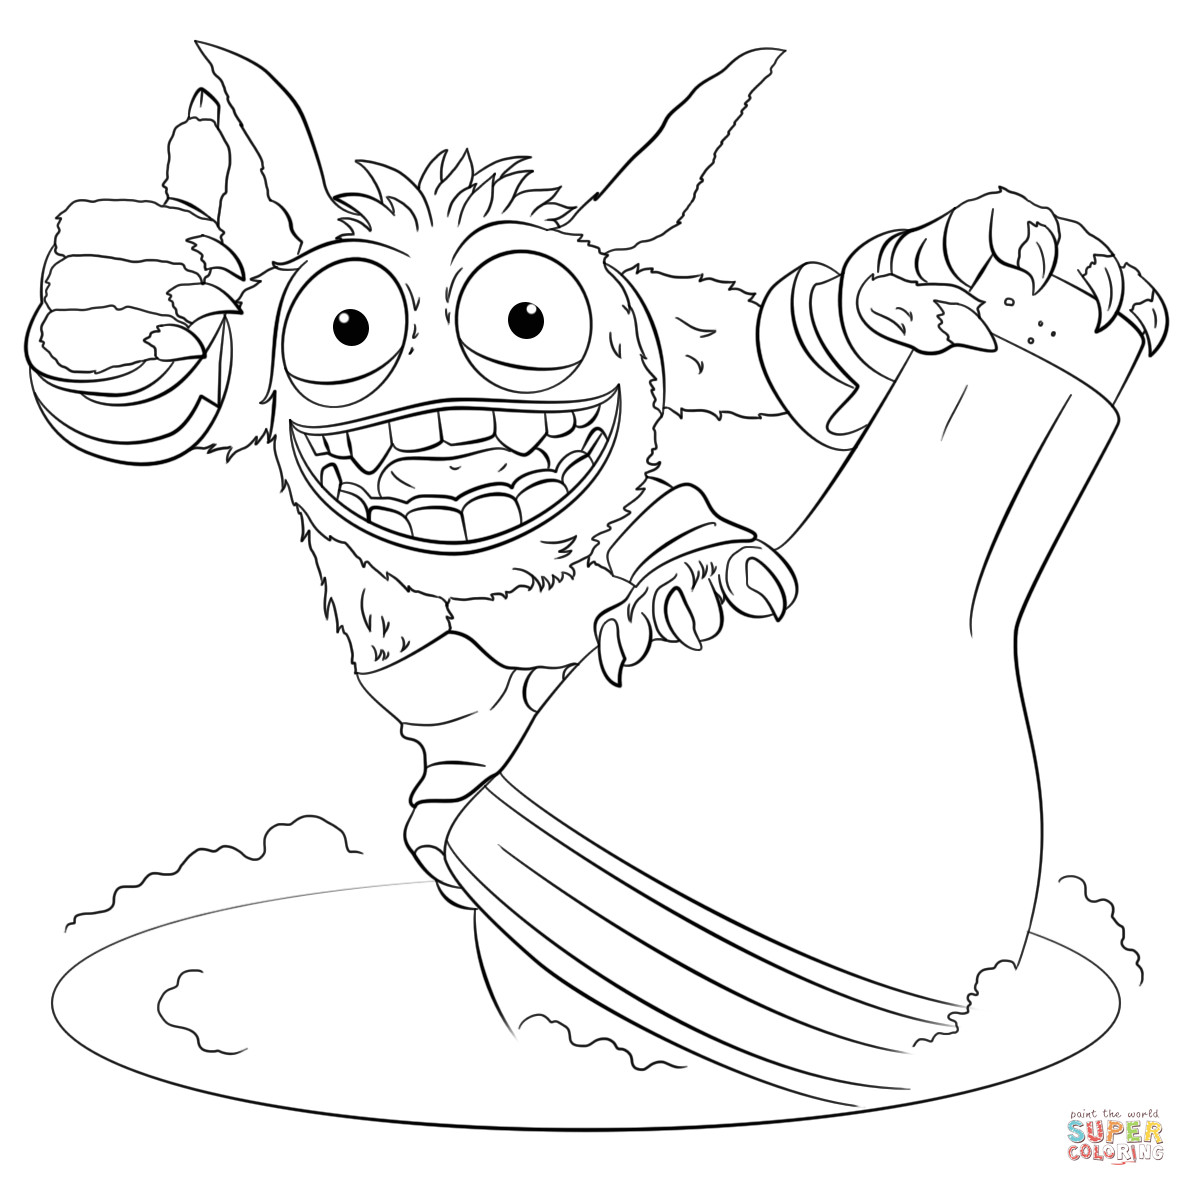 Best ideas about Skylanders Giants Printable Coloring Pages . Save or Pin Skylanders Giants Pop Fizz coloring page Now.